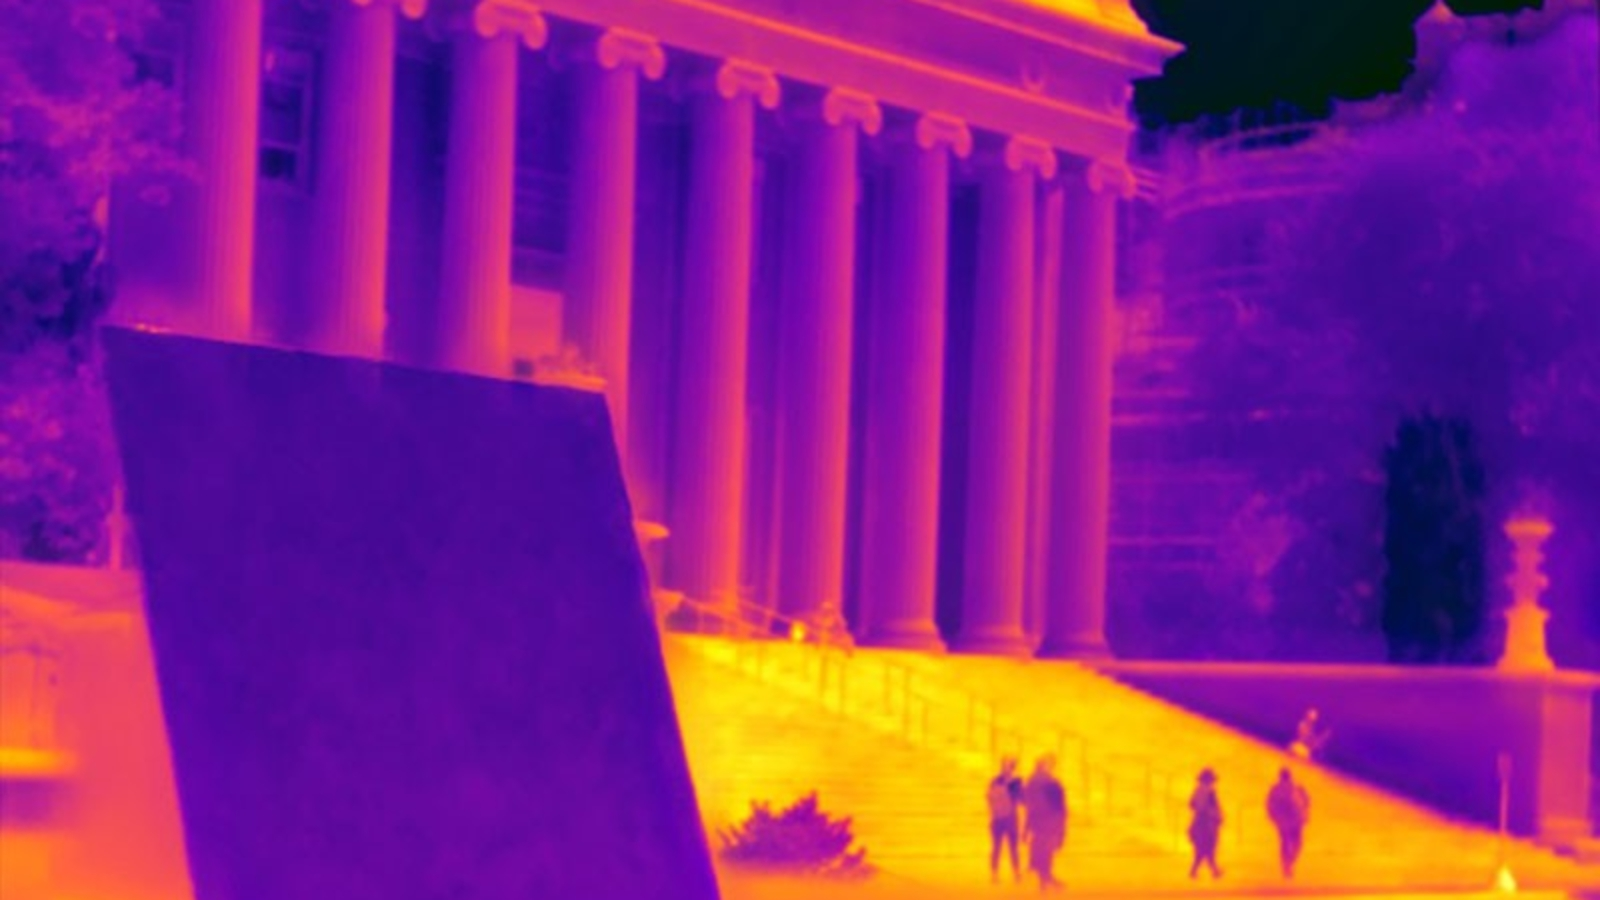 Infrared Image of Building With Super Cooled Coating